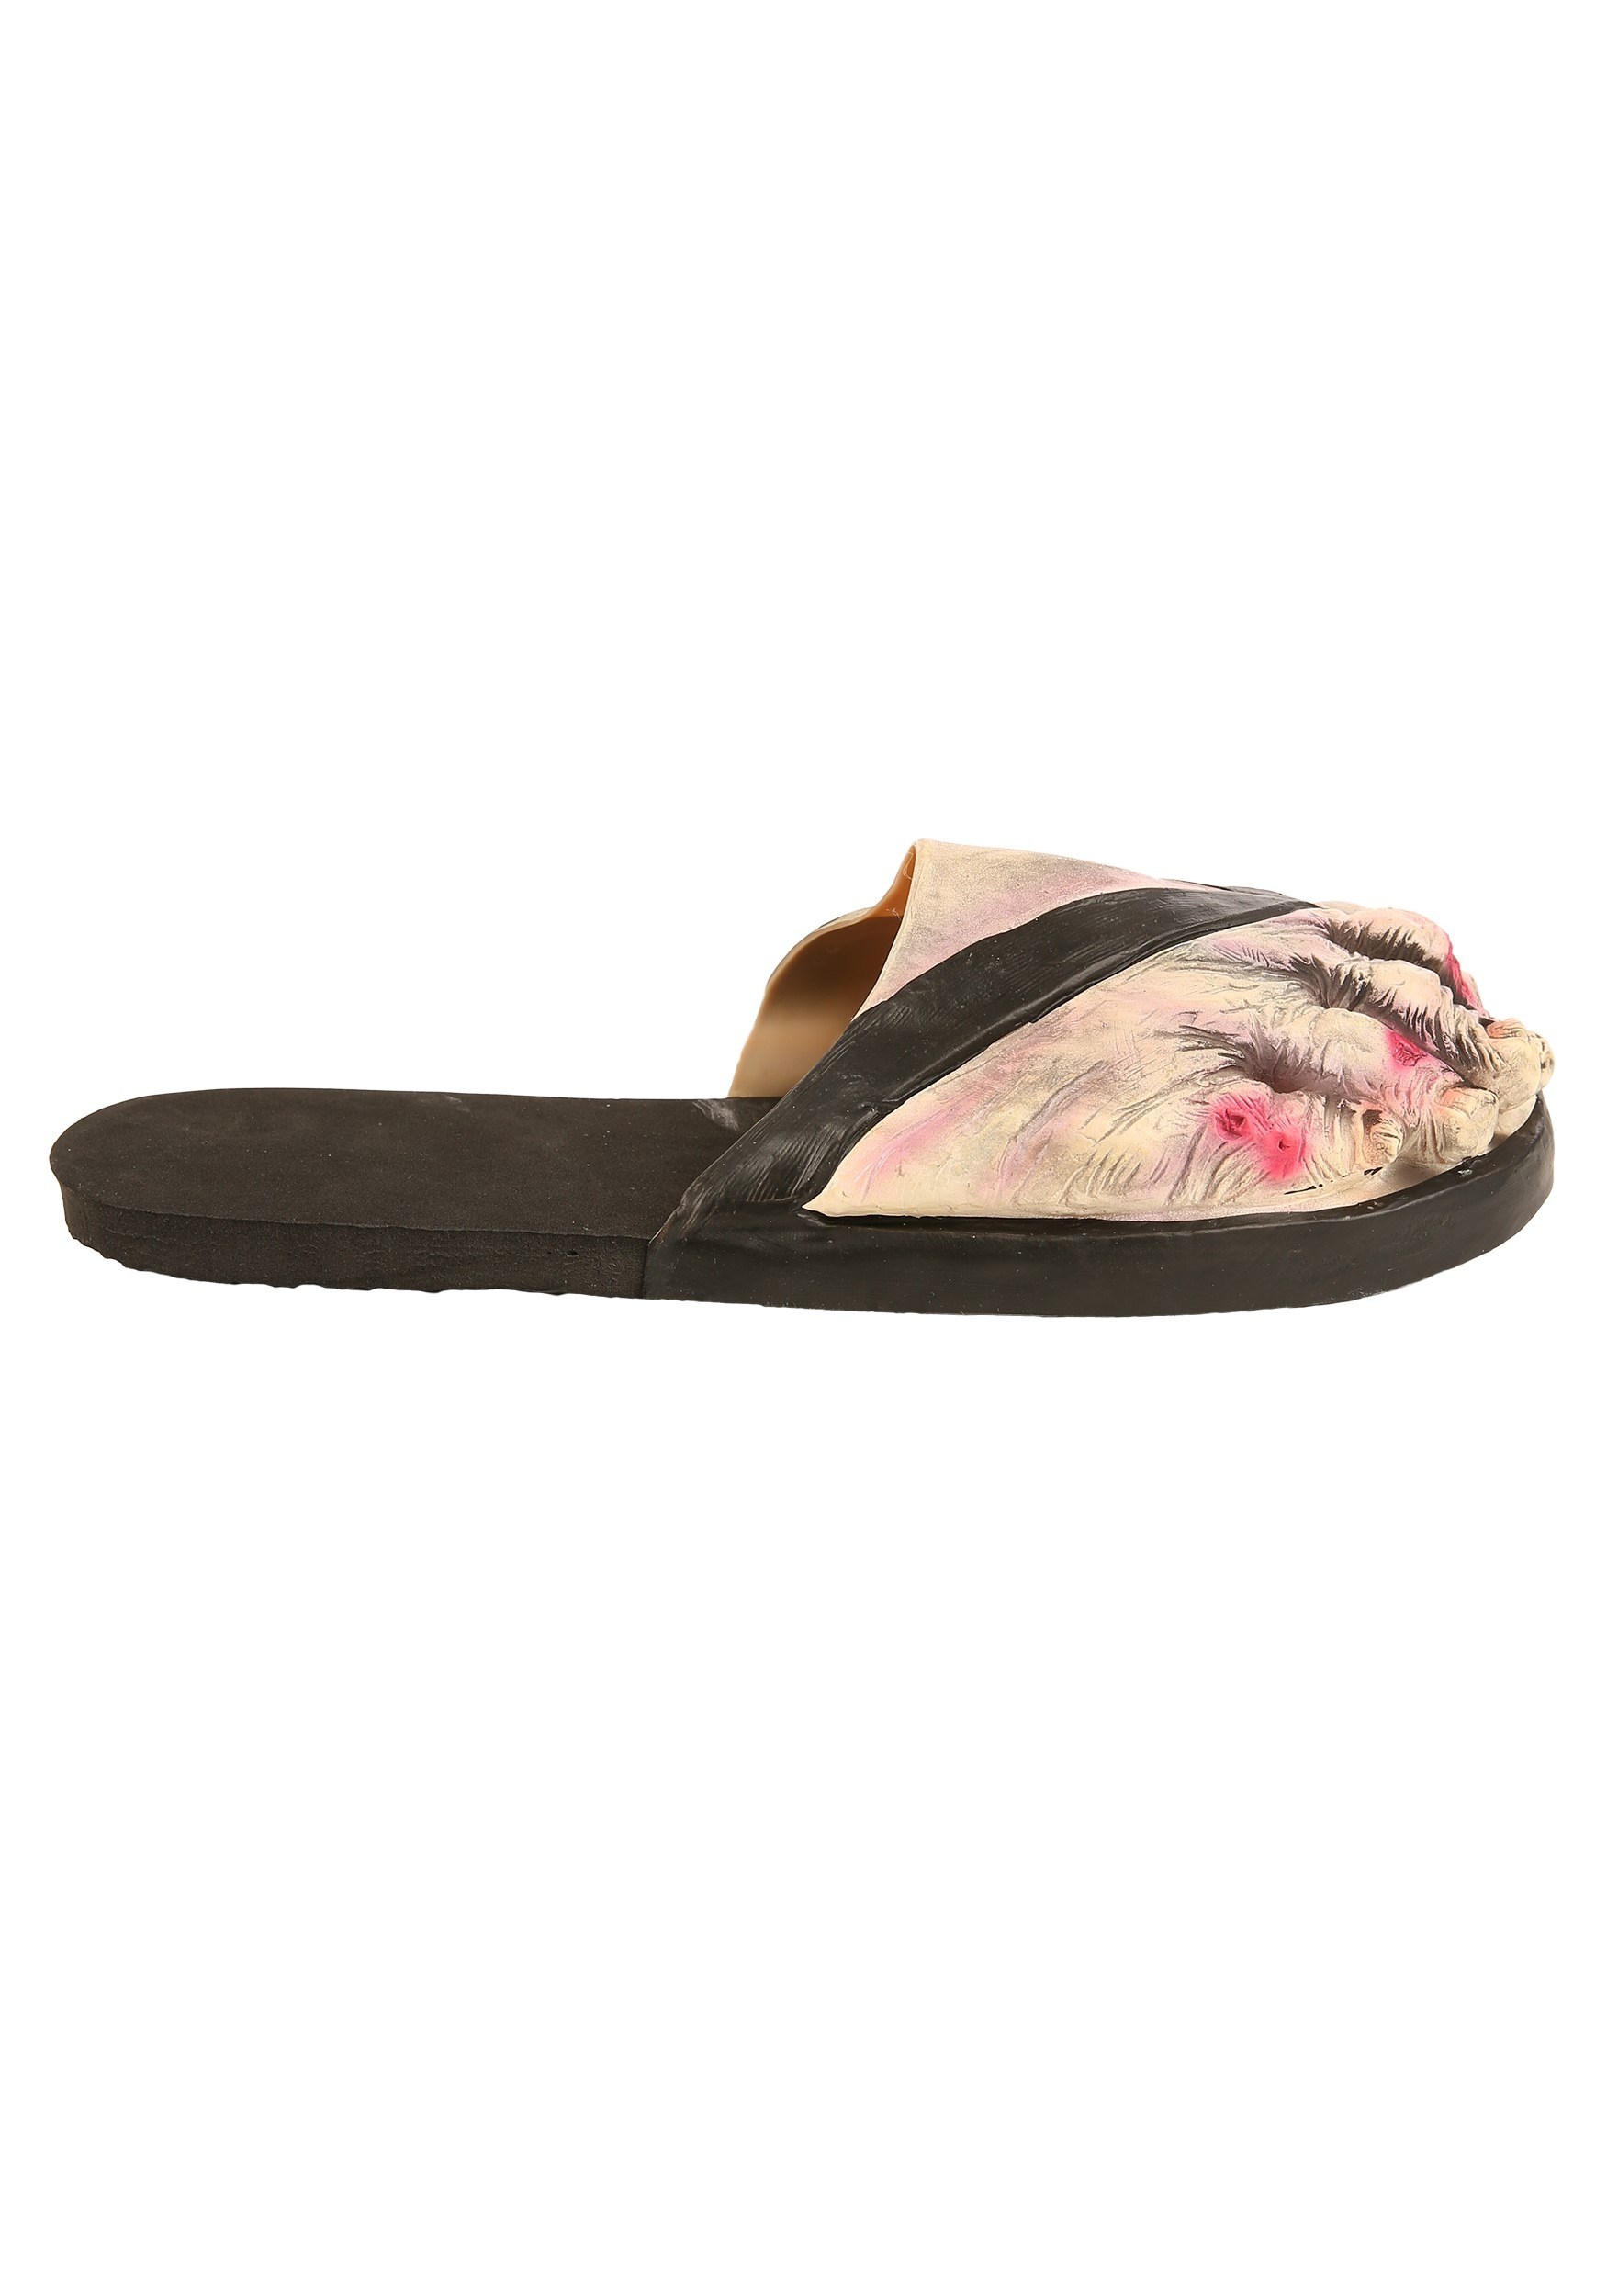 Zombie_Feet_Sandals_for_Adults